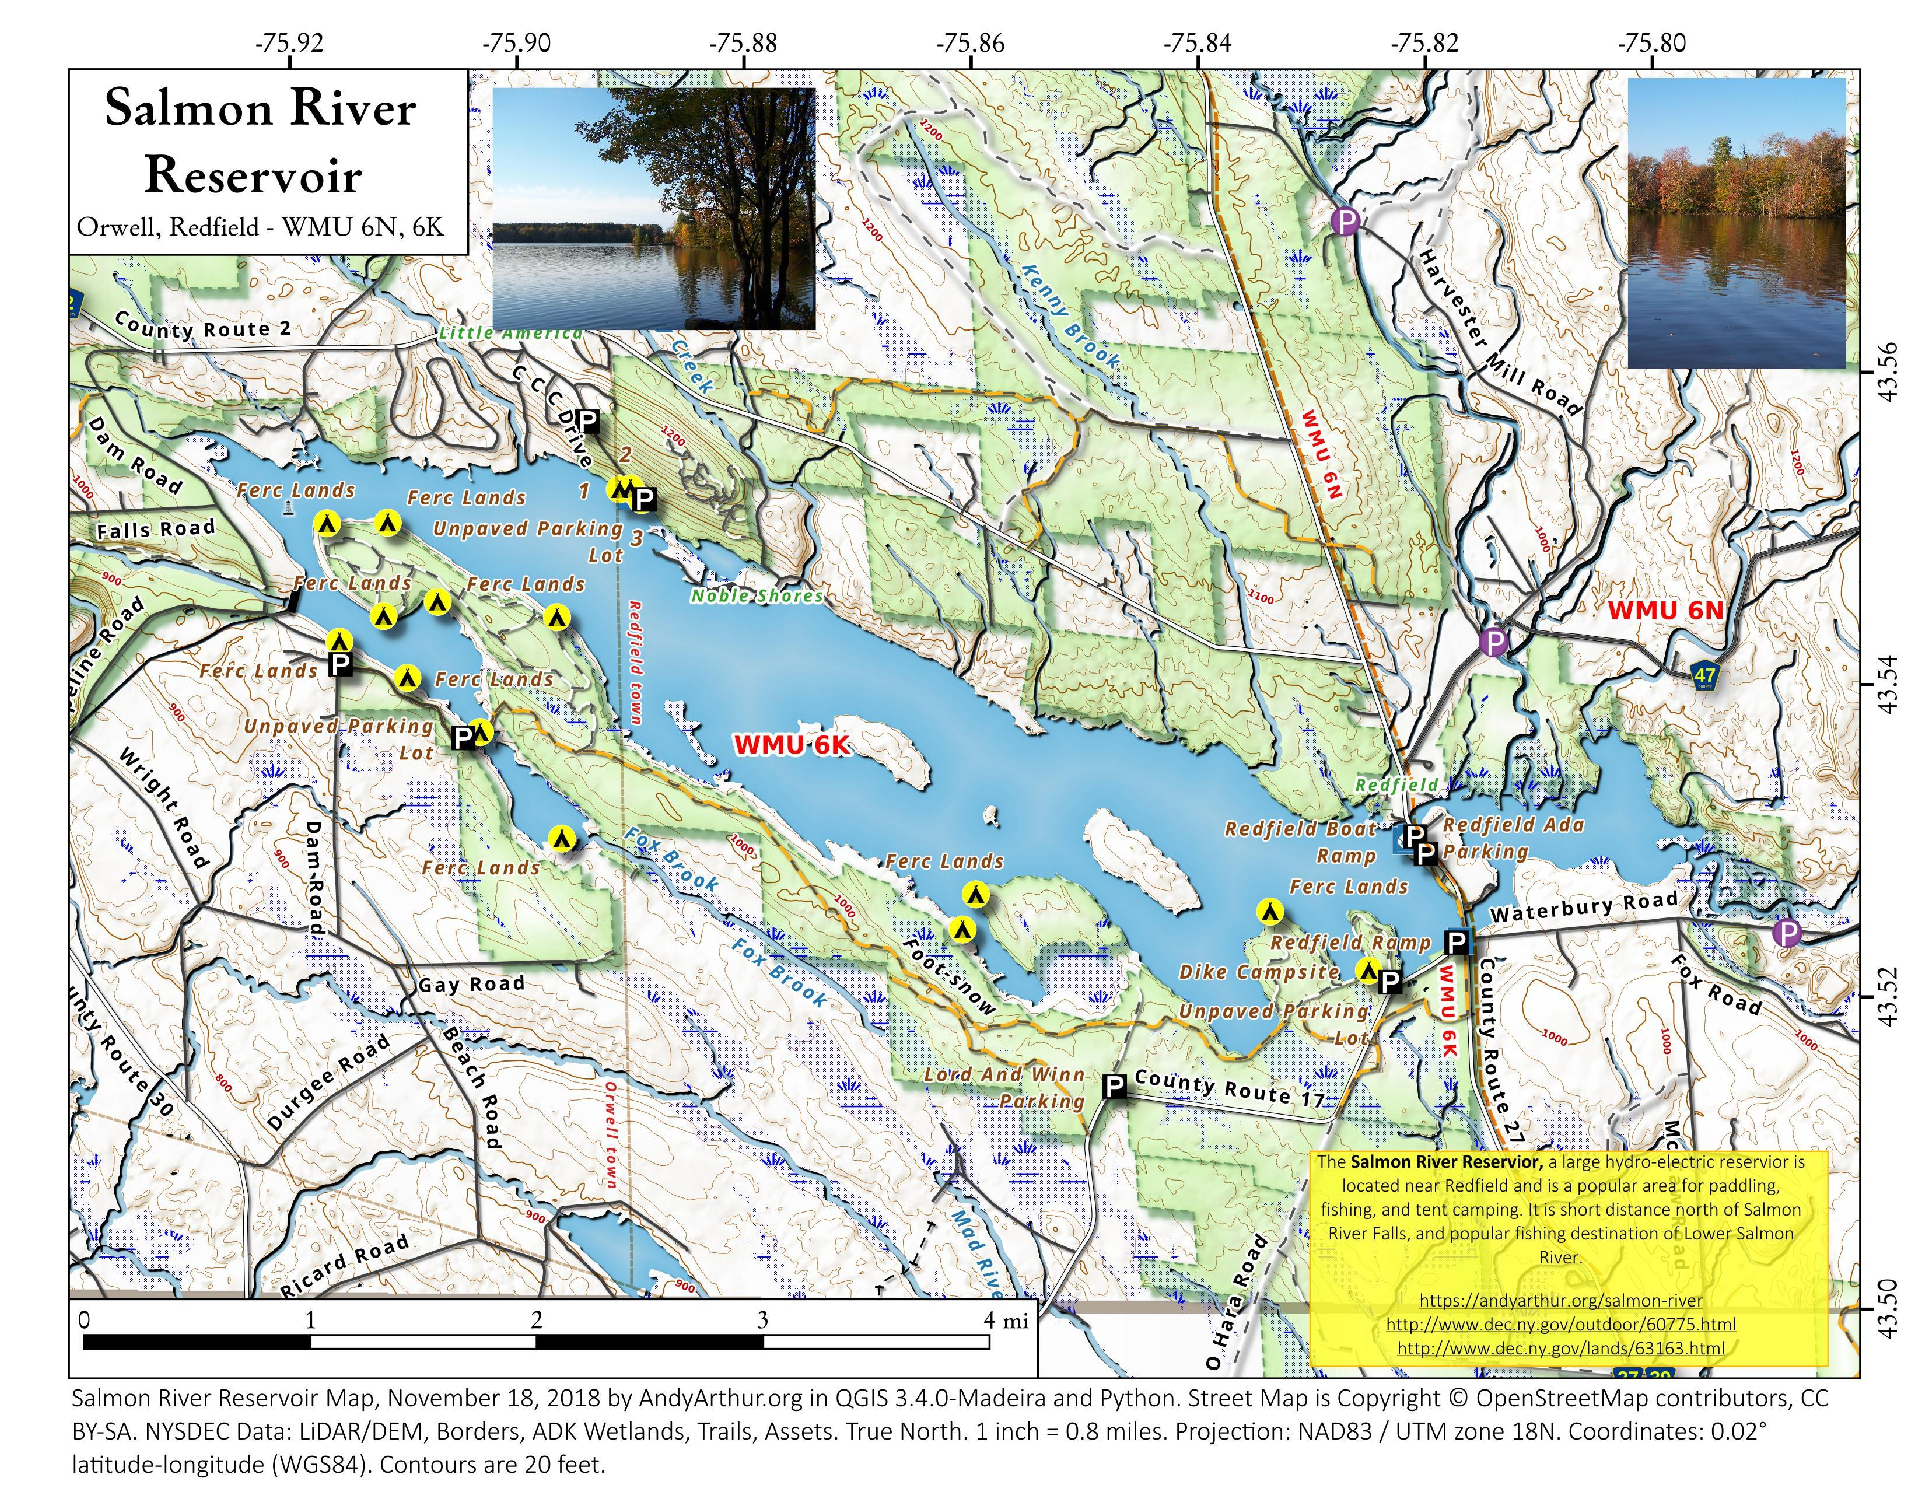 Salmon River Reservoir – Andy Arthur.org on may river map, sawtooth range, whitefish river map, kootenay river, lostine river map, borah peak, snake river map, yellowstone river map, delaware river map, pend oreille river, columbia river map, snake river, clearwater river, sawtooth national recreation area, raft river map, salt river, river of no return map, pocantico river map, hells canyon, albion river map, connecticut river map, middle fork salmon river, colorado river map, owyhee county, lewis county, santiam river map, spokane river, quinnipiac river map, clearwater river map, willamette river map, lake pend oreille, the river wild, boise river, lemhi river, purple river map, nestucca river map, clark fork, susquehanna river map,